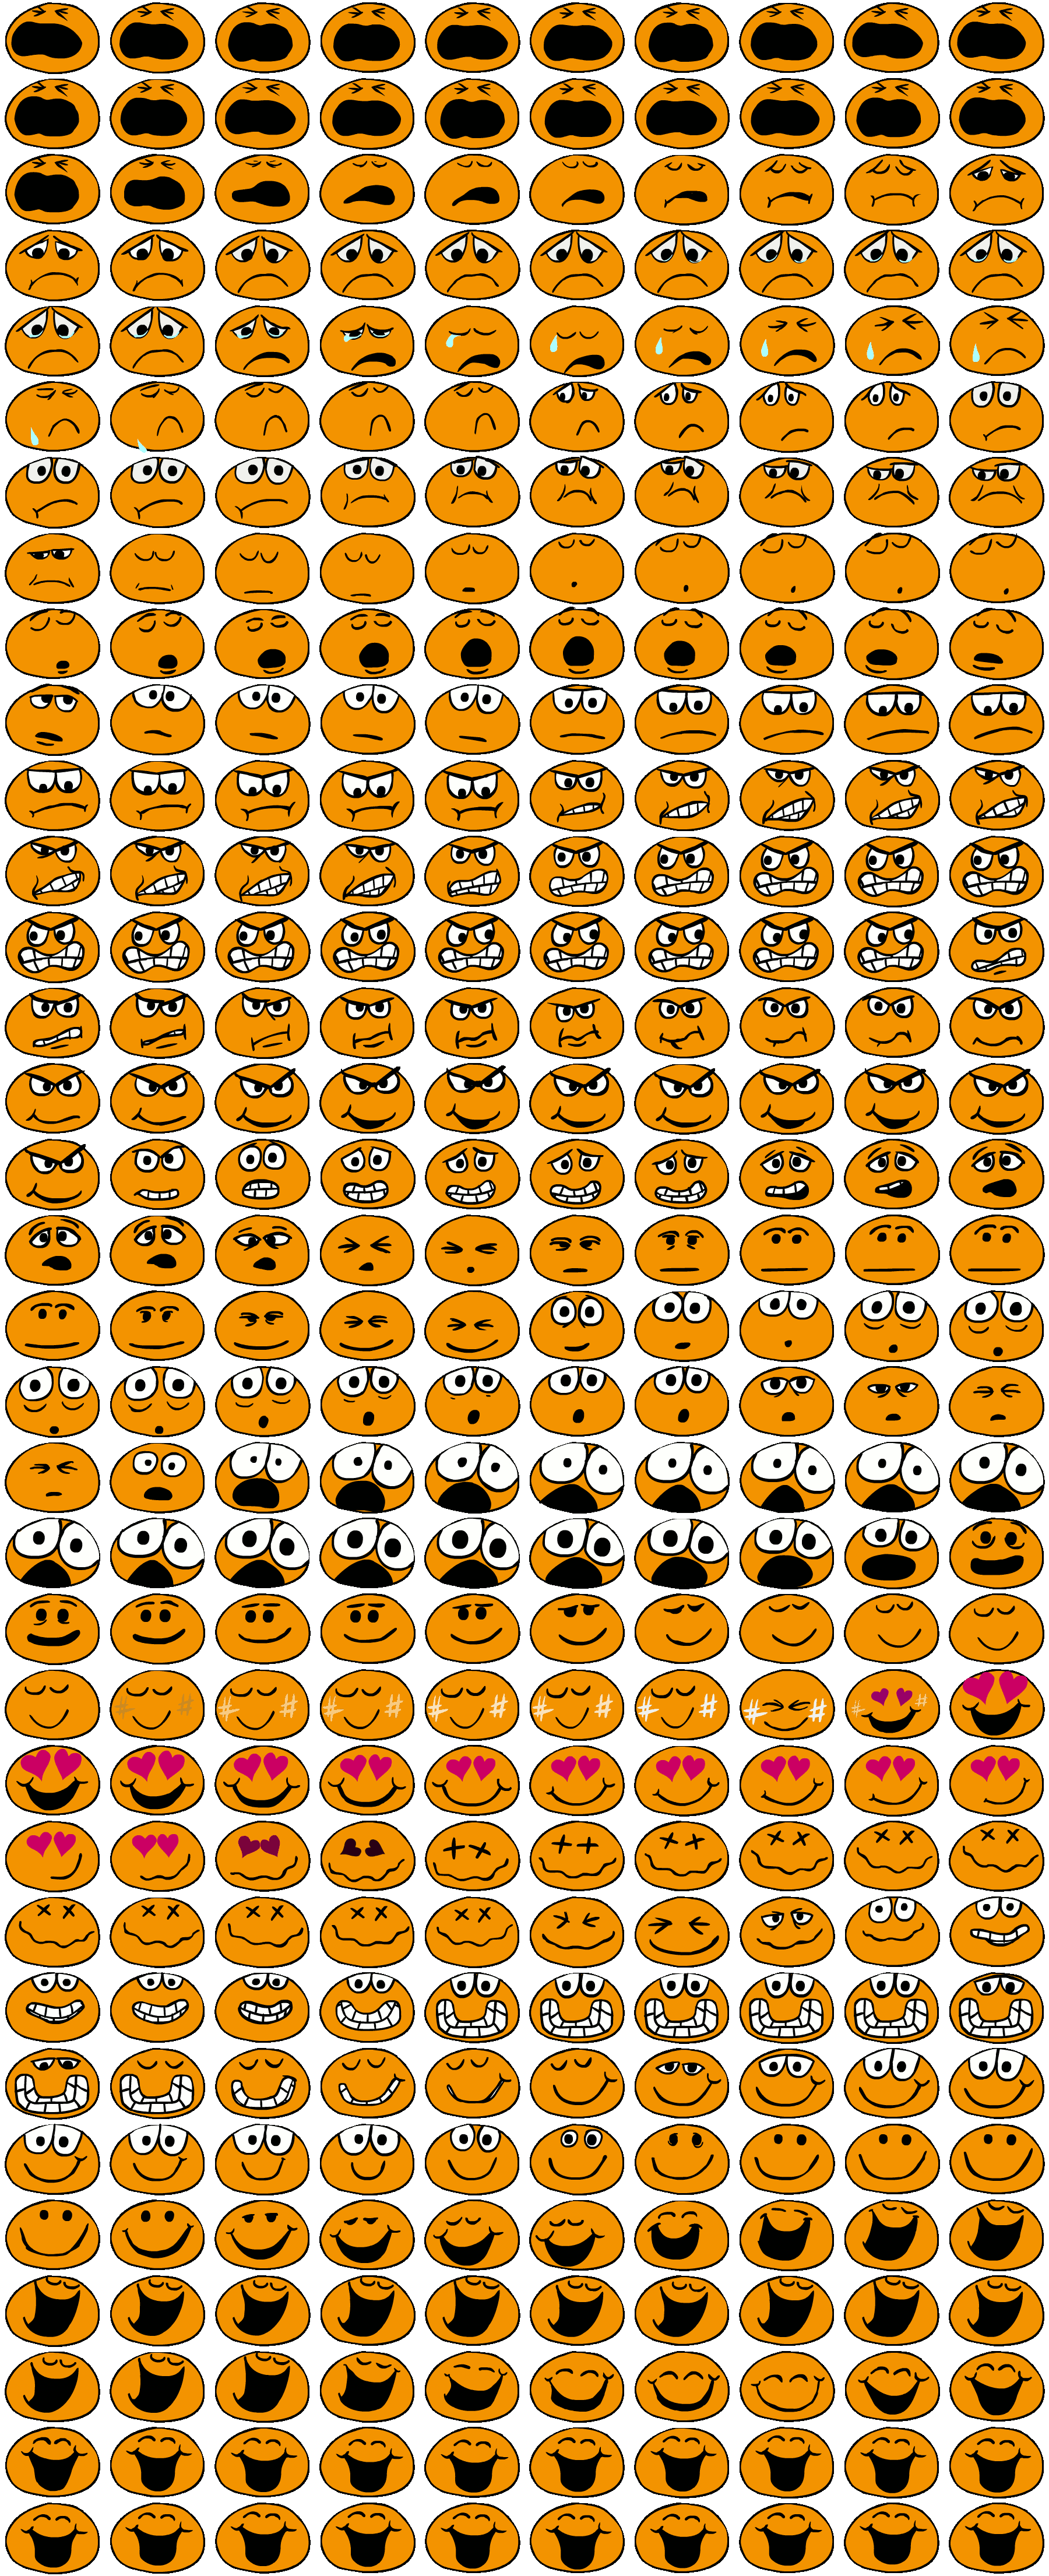 http://smyfaceimages.s3.amazonaws.com/moods_orange.png